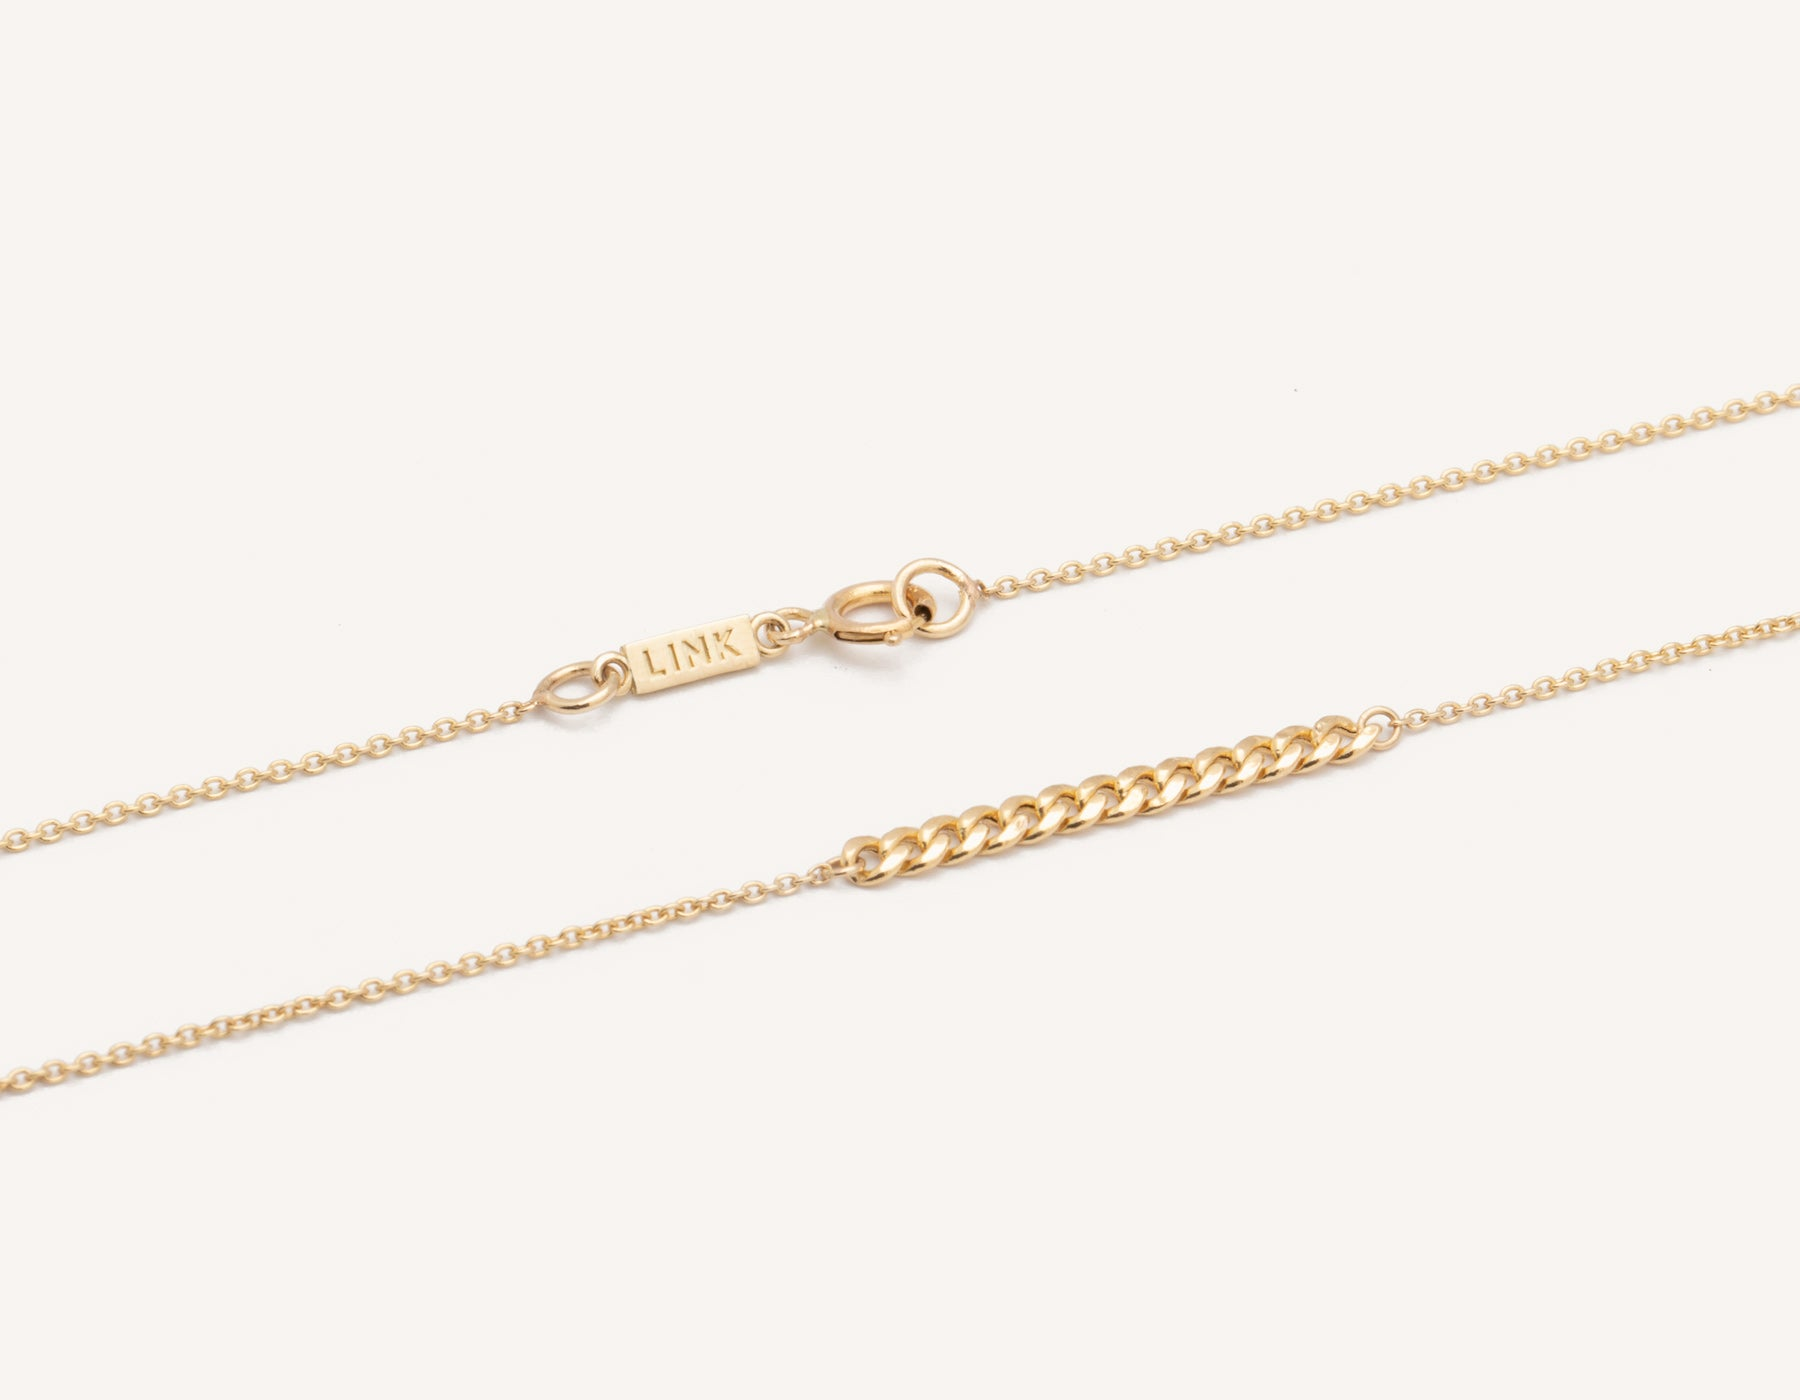 73a7594a3cf Simple classic chain 14k solid gold Interlink Necklace Vrai and Oro, 14K  Yellow Gold